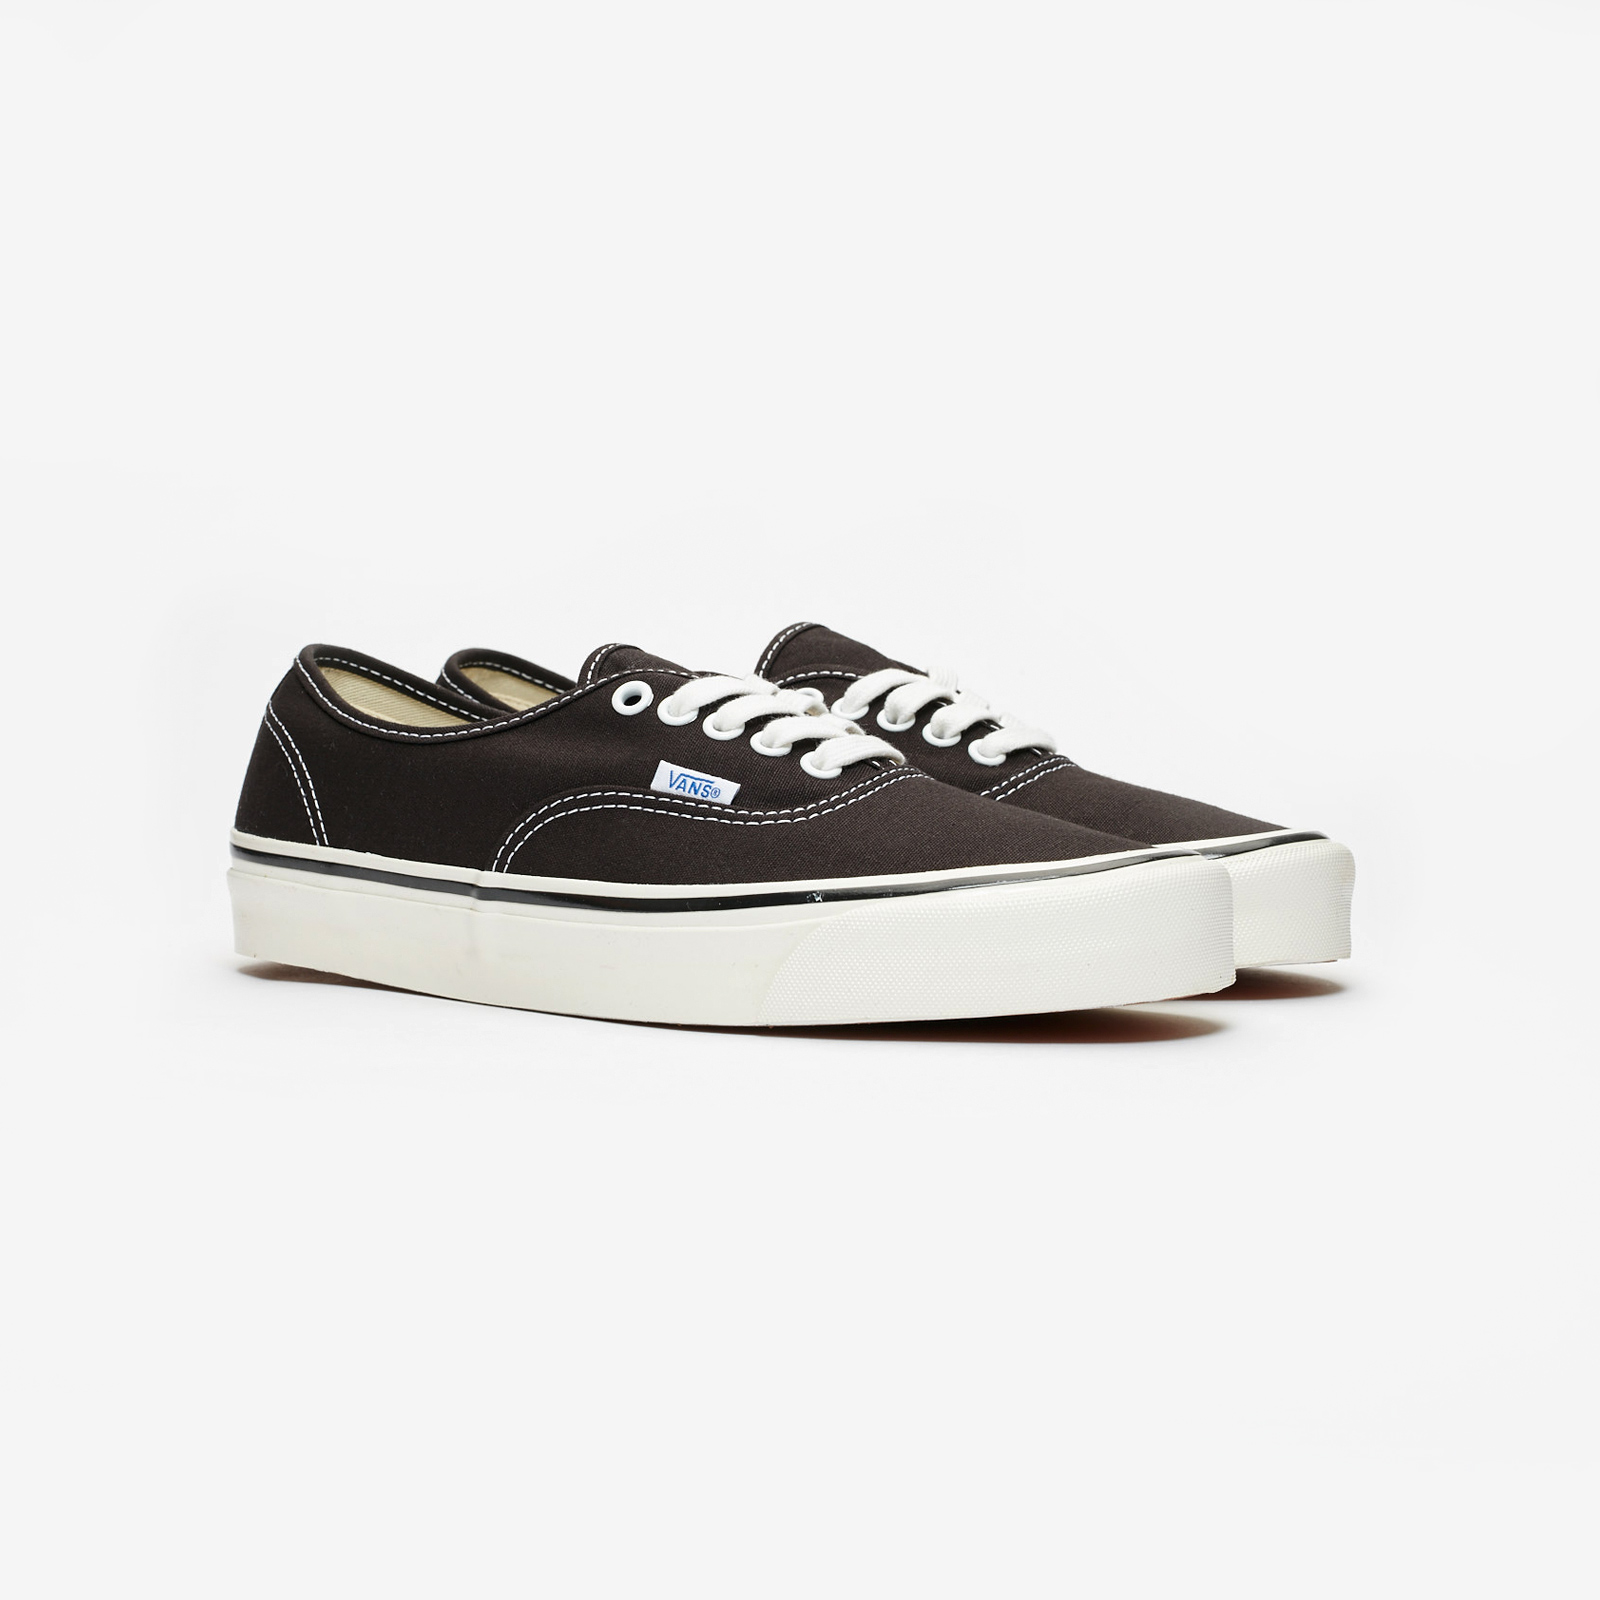 3b4c8a28ef9613 Vans UA Authentic 44 DX - Va38enmr2 - Sneakersnstuff